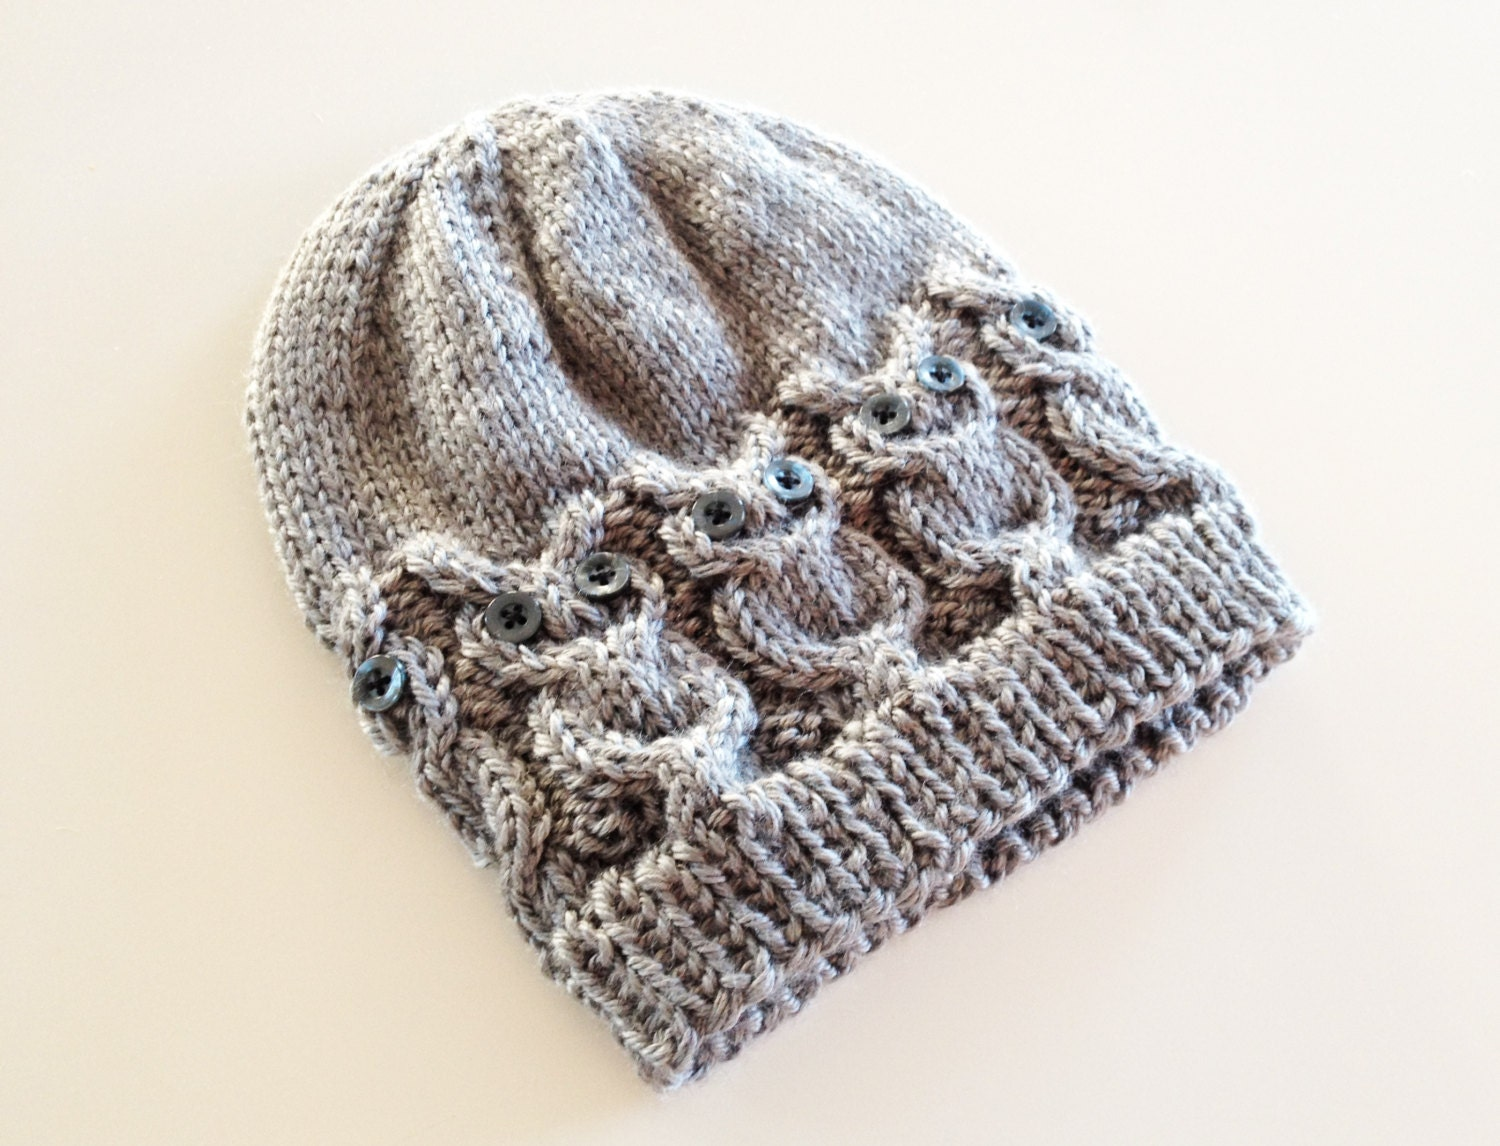 Knitting Pattern For Owl : Owl Knit Hat